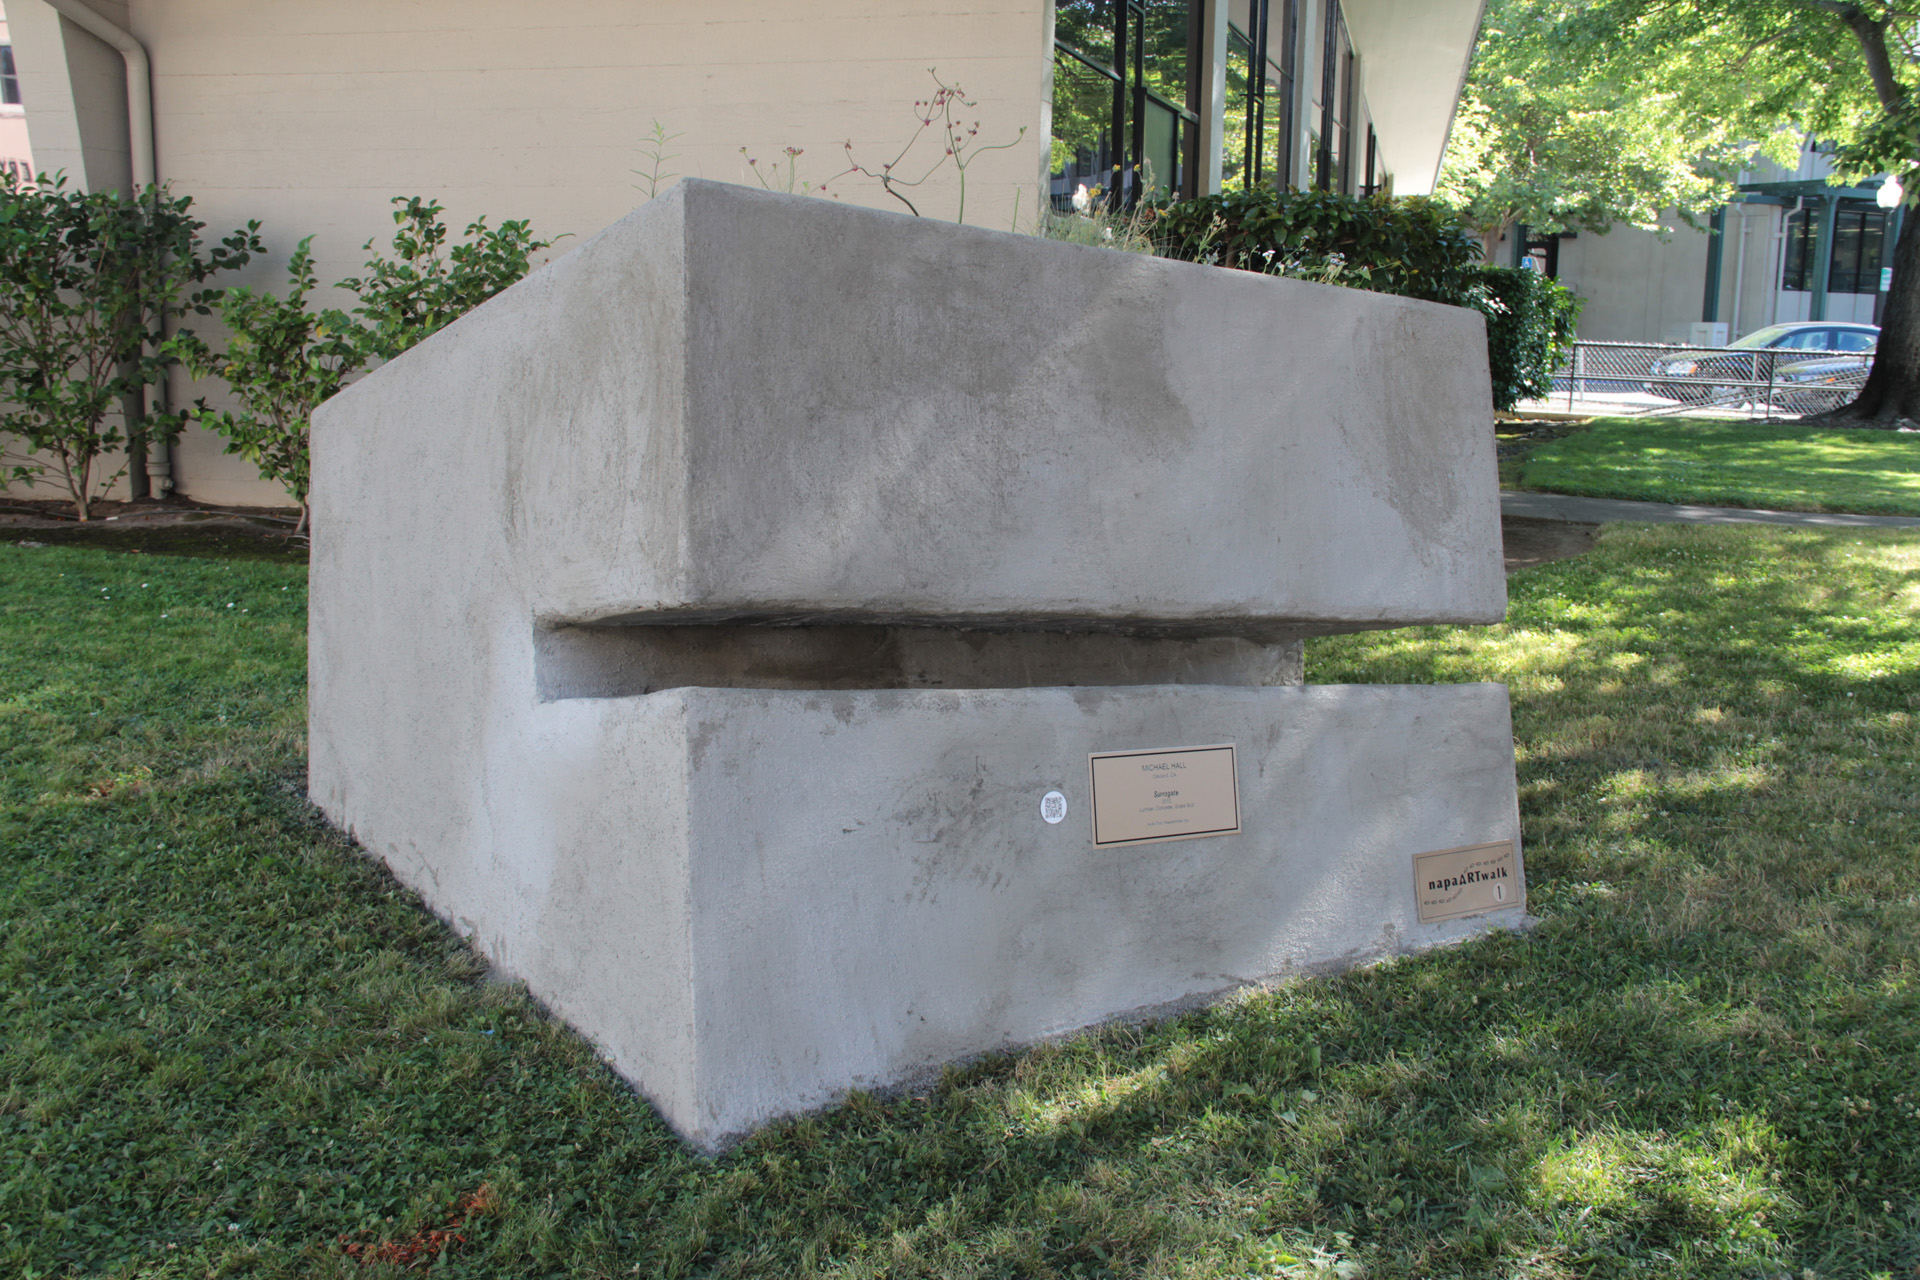 Surrogate  installed in front of Napa City Hall as part of the city's ARTwalk. On view through June 2015.